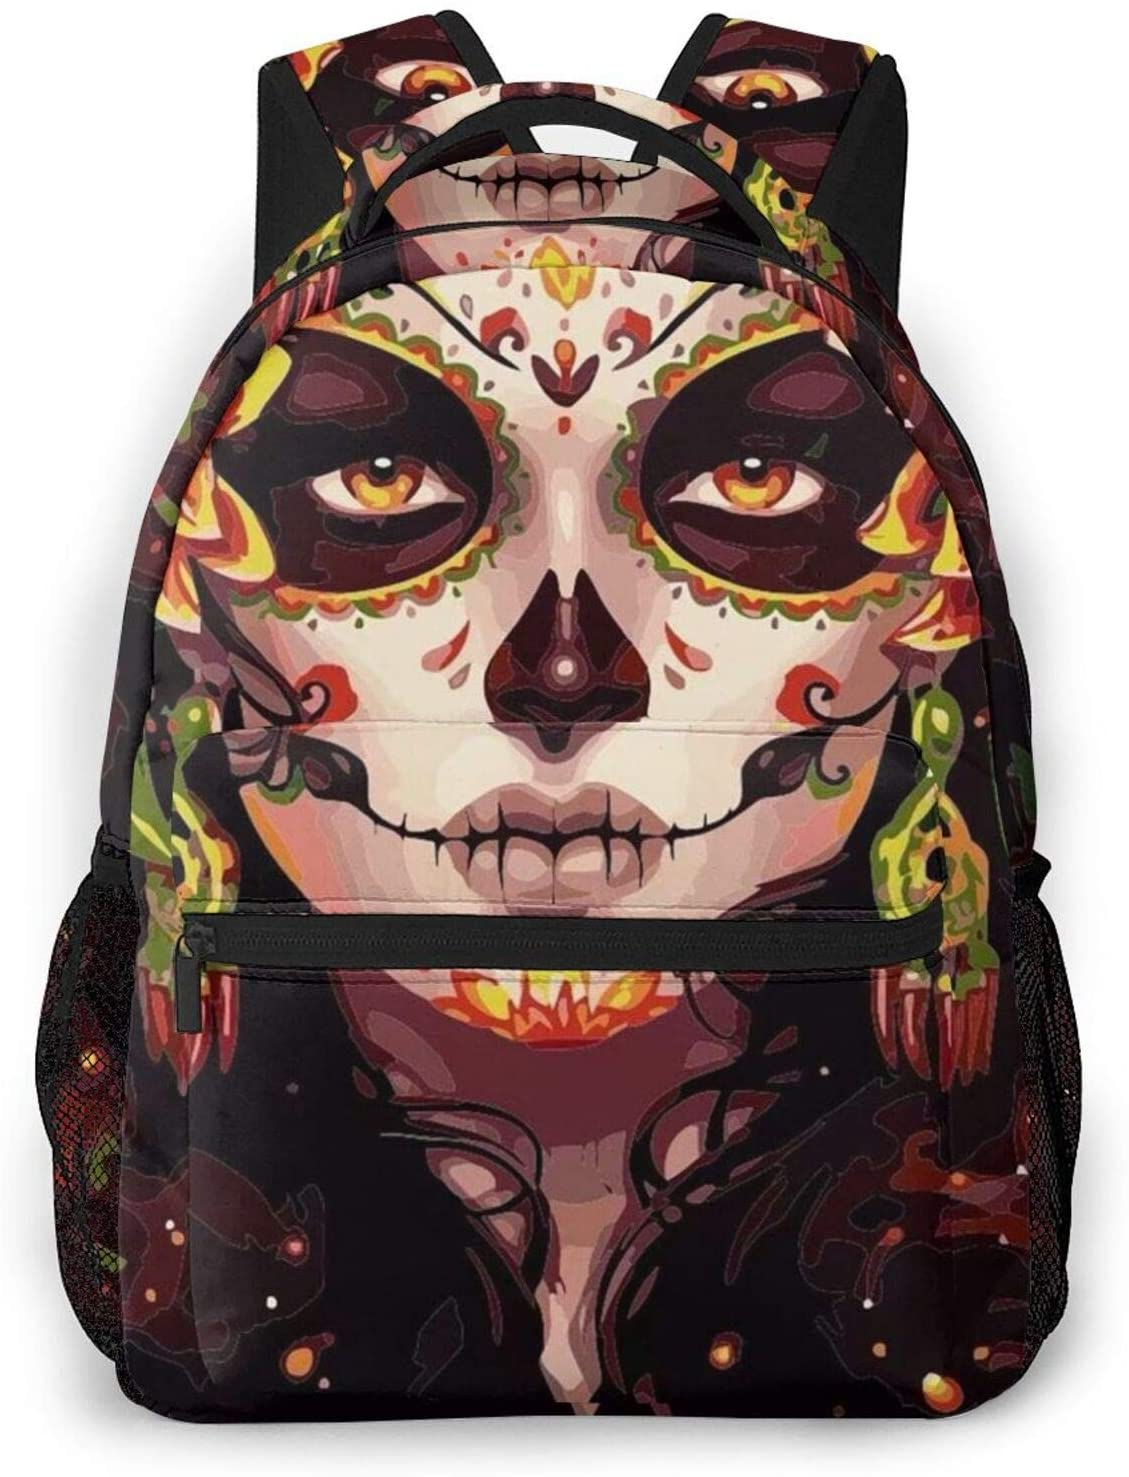 NiYoung Hiking Work Walking Cycling Backpack Daypack Durable Polyester Multipurpose Anti-Theft Backpack Big Capacity Bookbag, Day of The Dead Mysterious Goth Woman